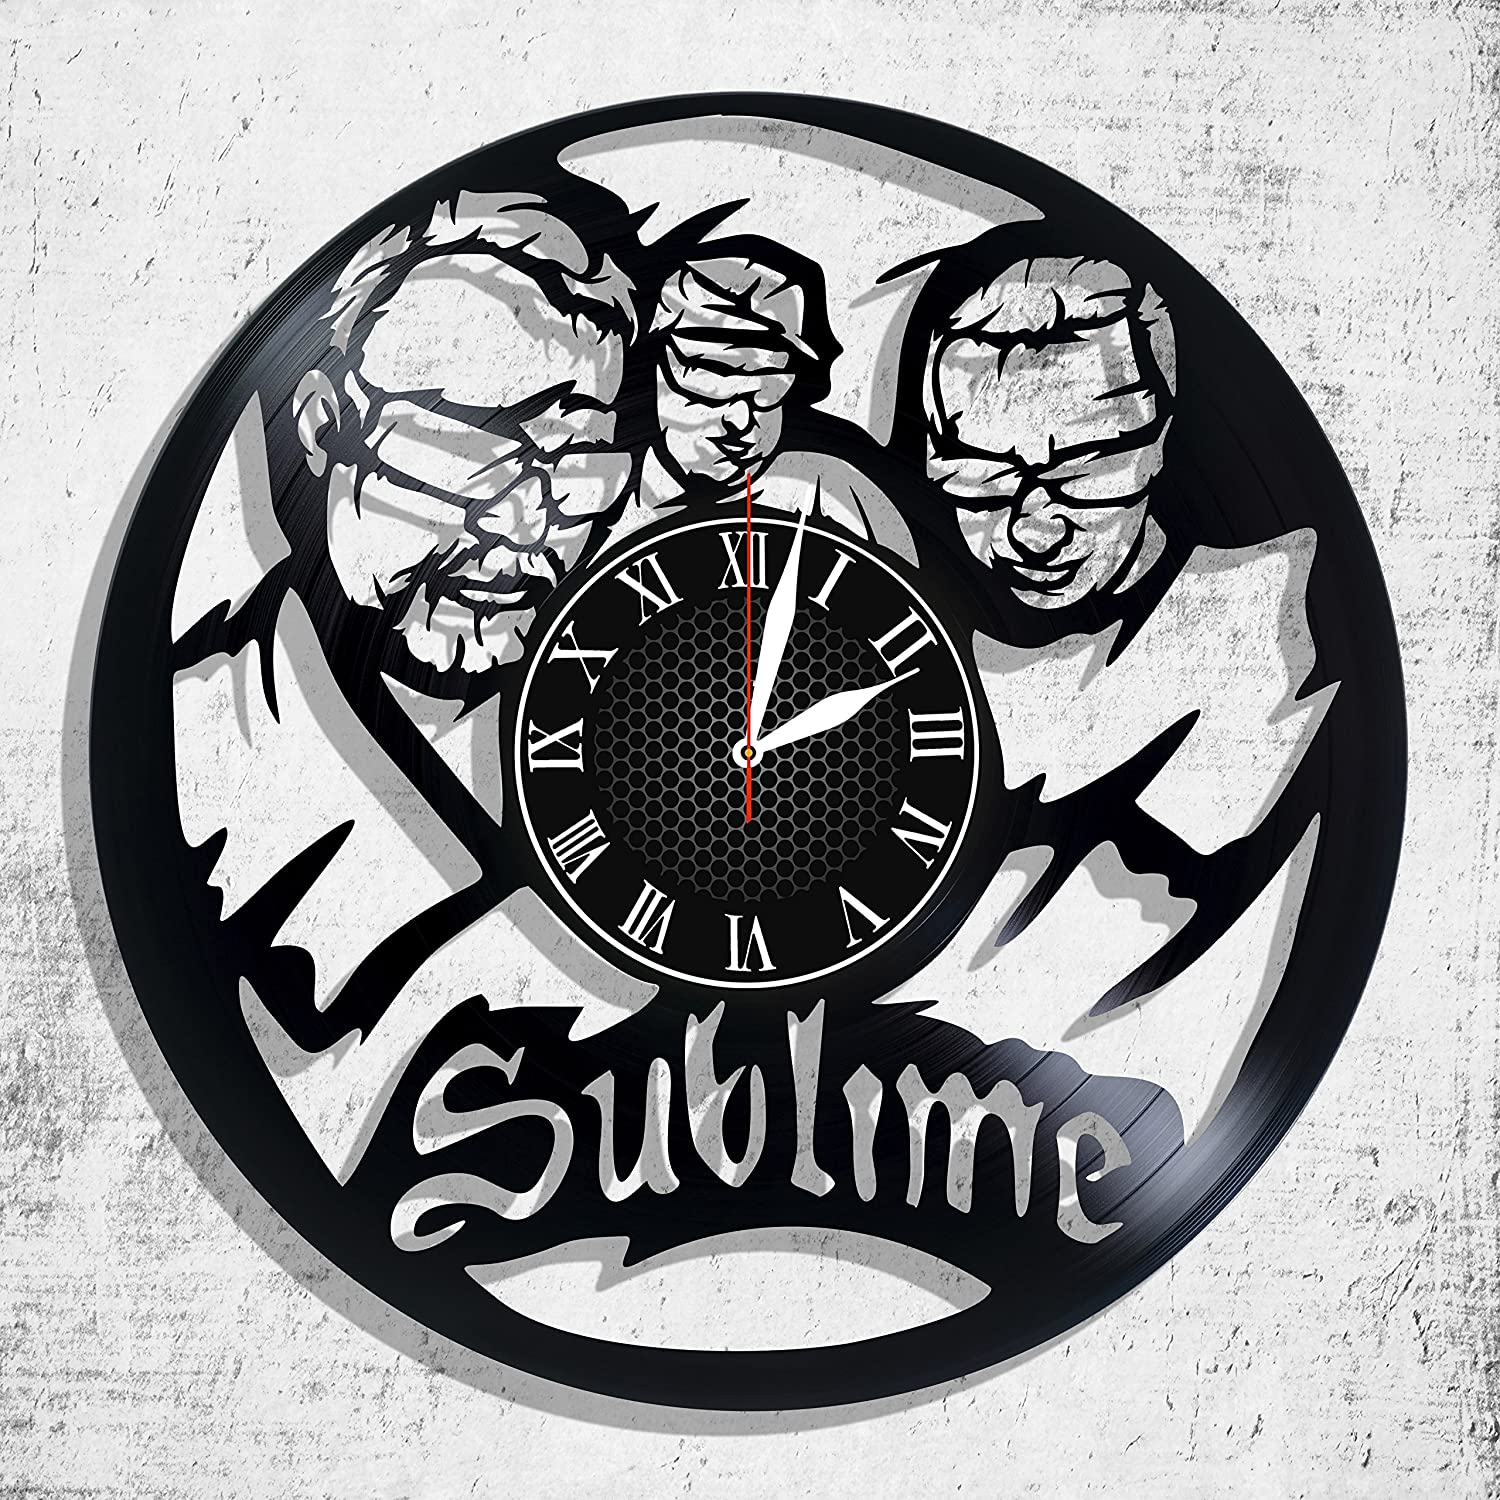 Amazon com: Sublime rock band design wall clock, Sublime wall poster